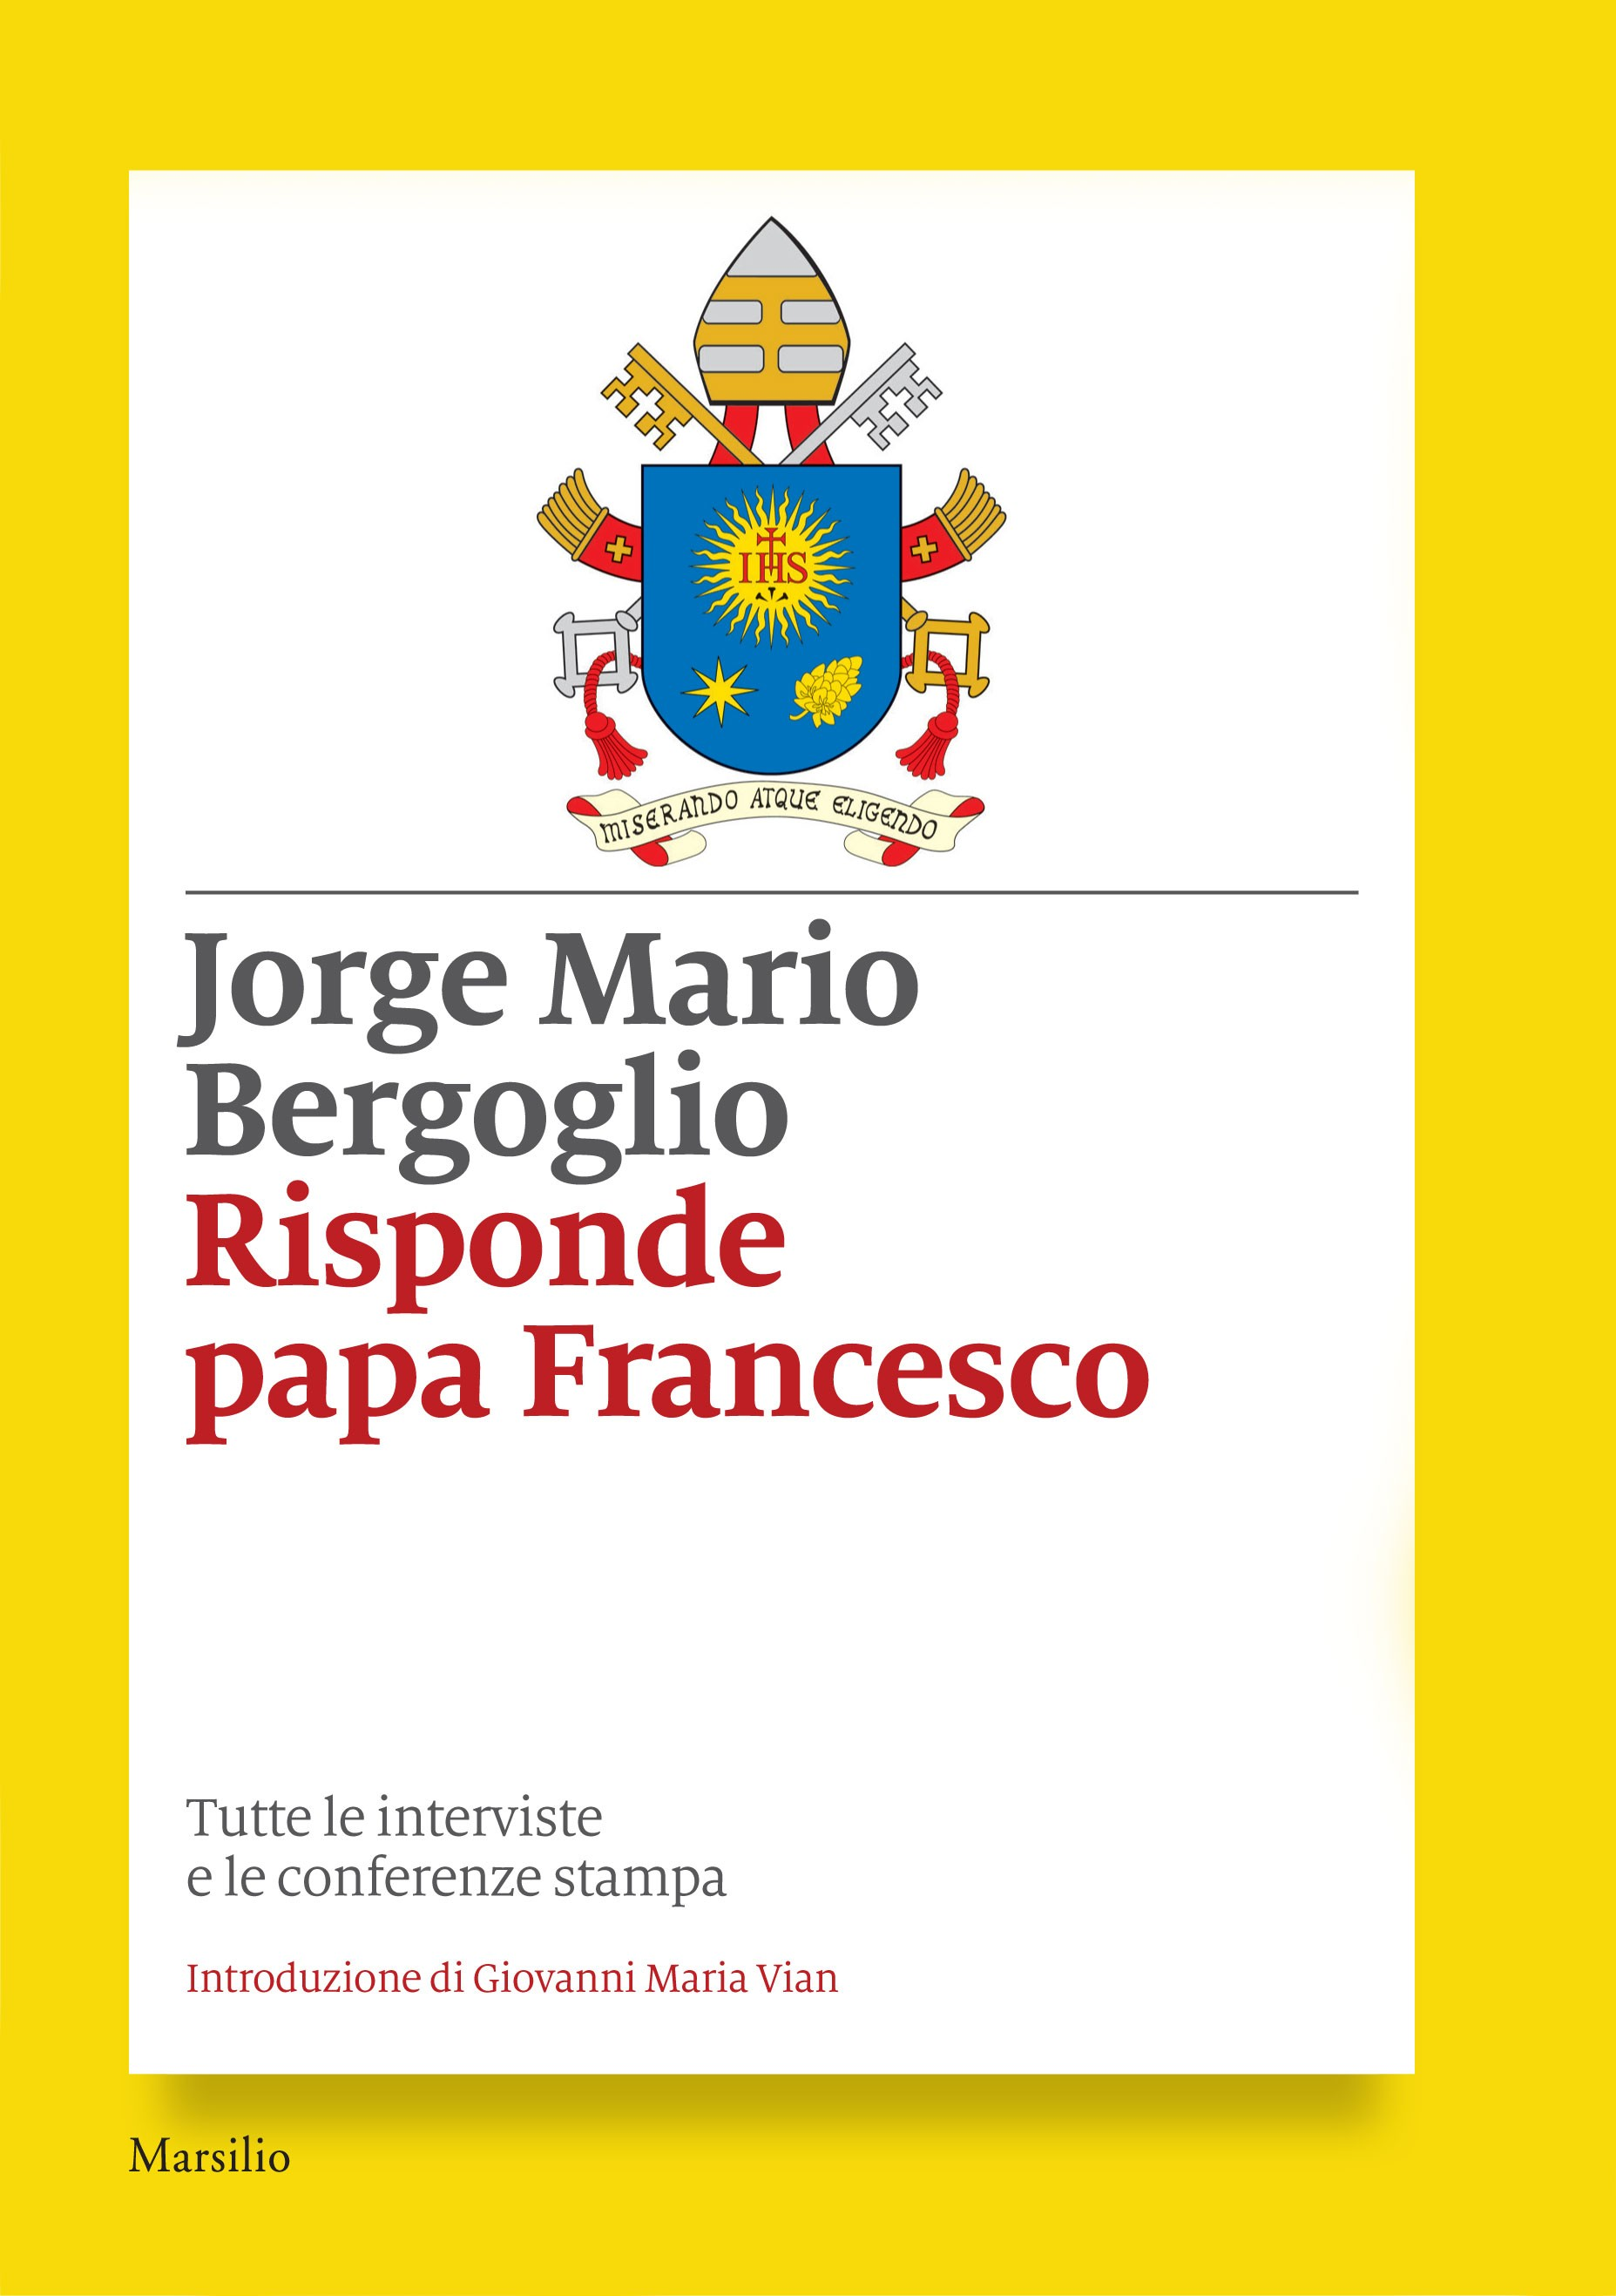 Google Book Cover Images Api : Risponde papa francesco jorge mario bergoglio ebook